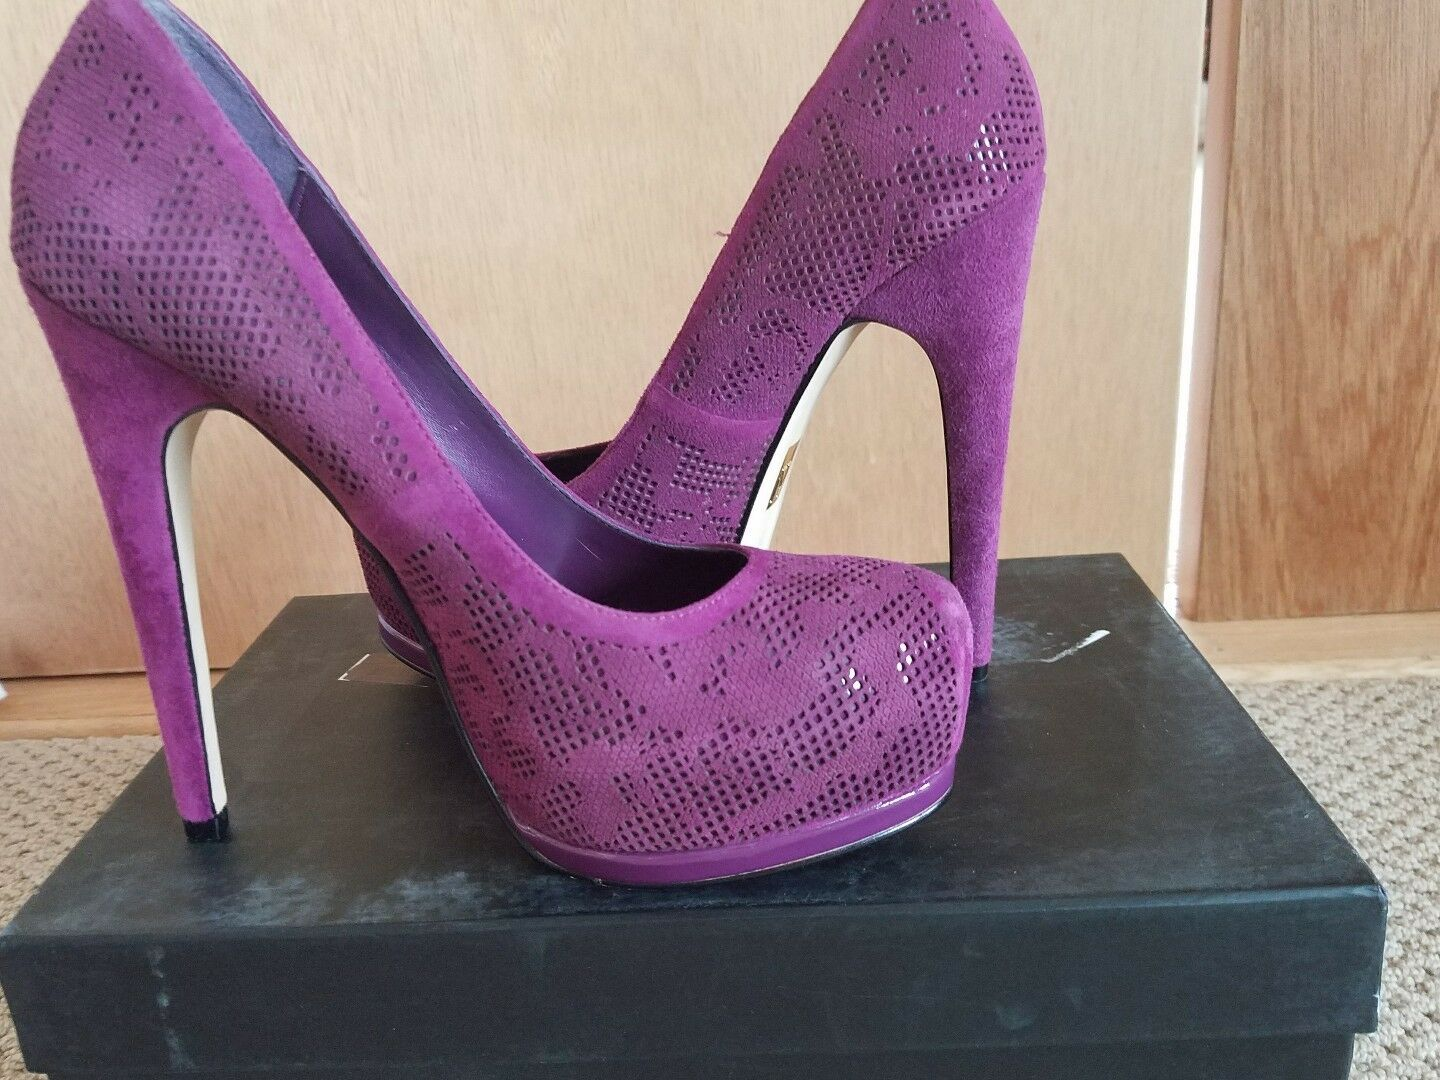 Truth or Dare by MaDamens Größe 7  LANGLADE Purple Suede Heels New Damenschuhe Schuhes.